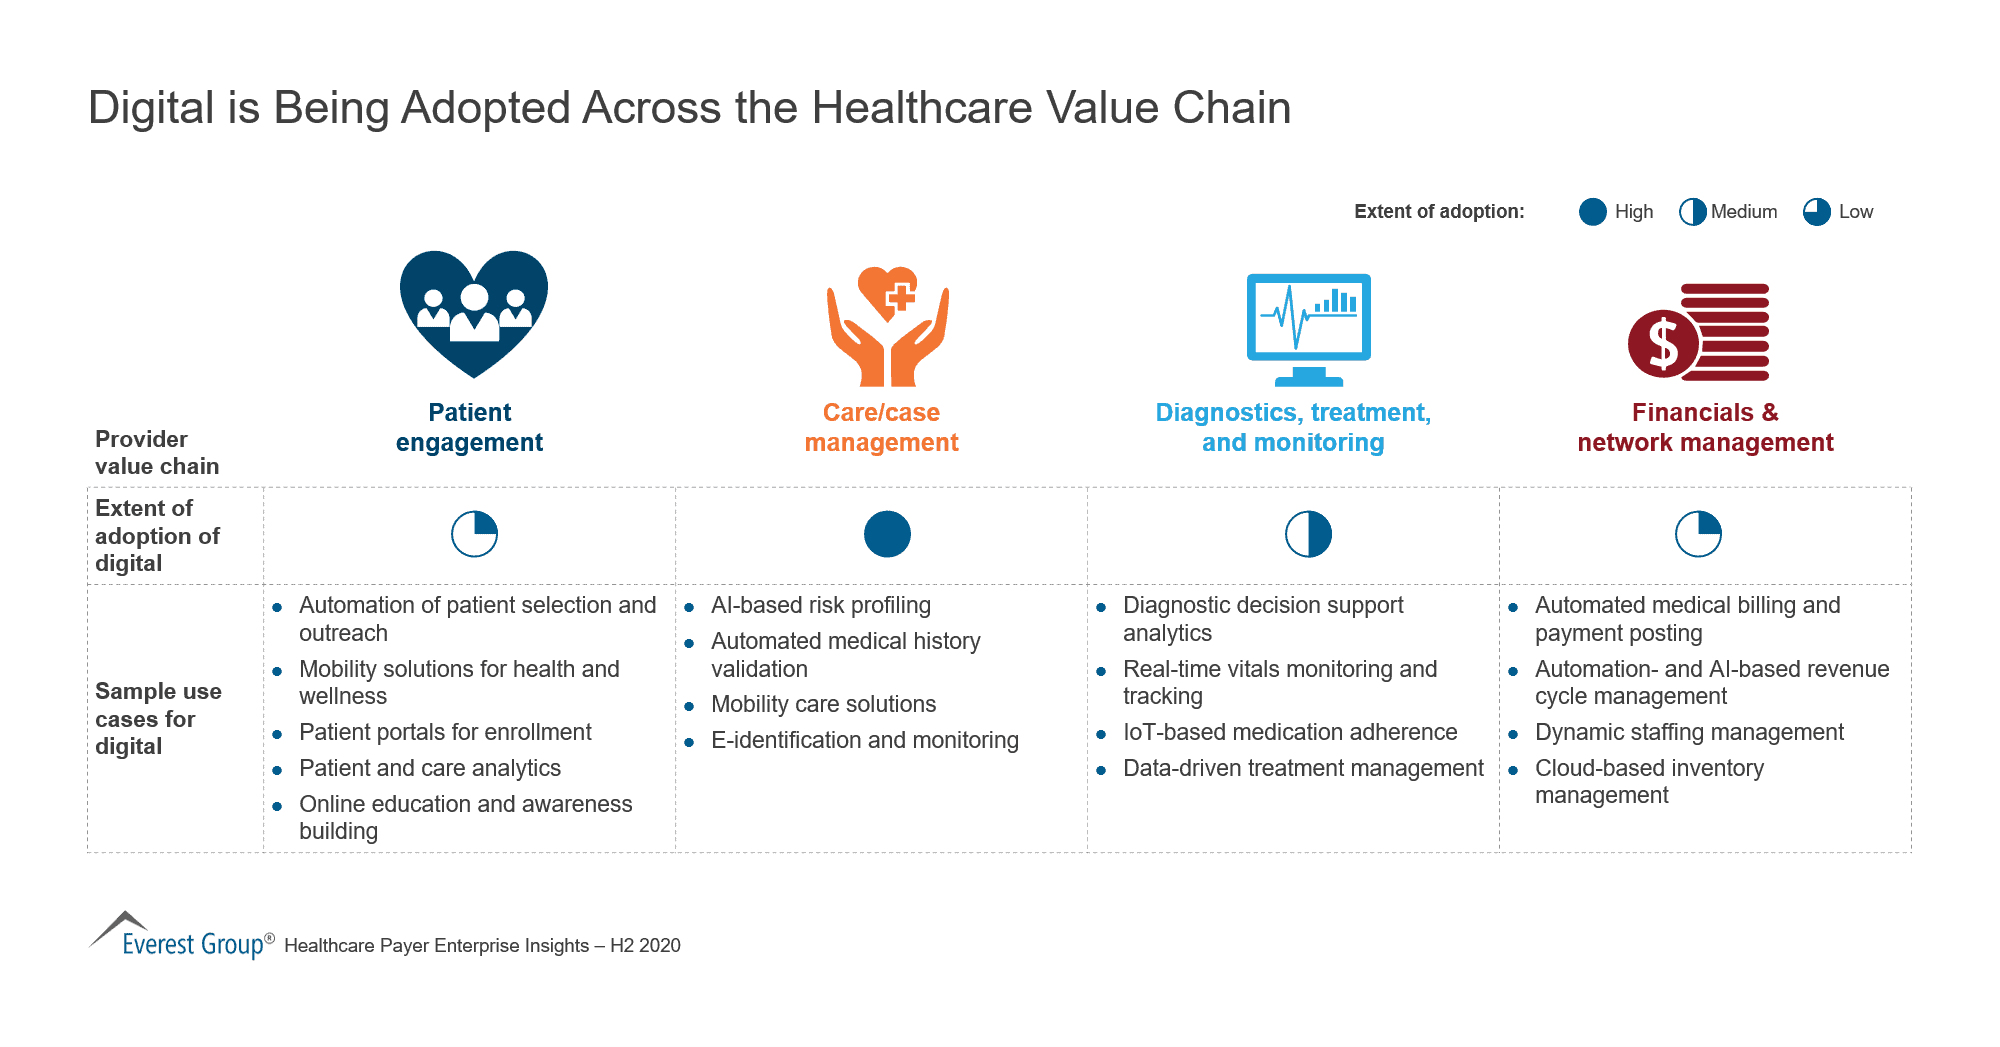 Digital is Being Adopted Across the Healthcare Value Chain